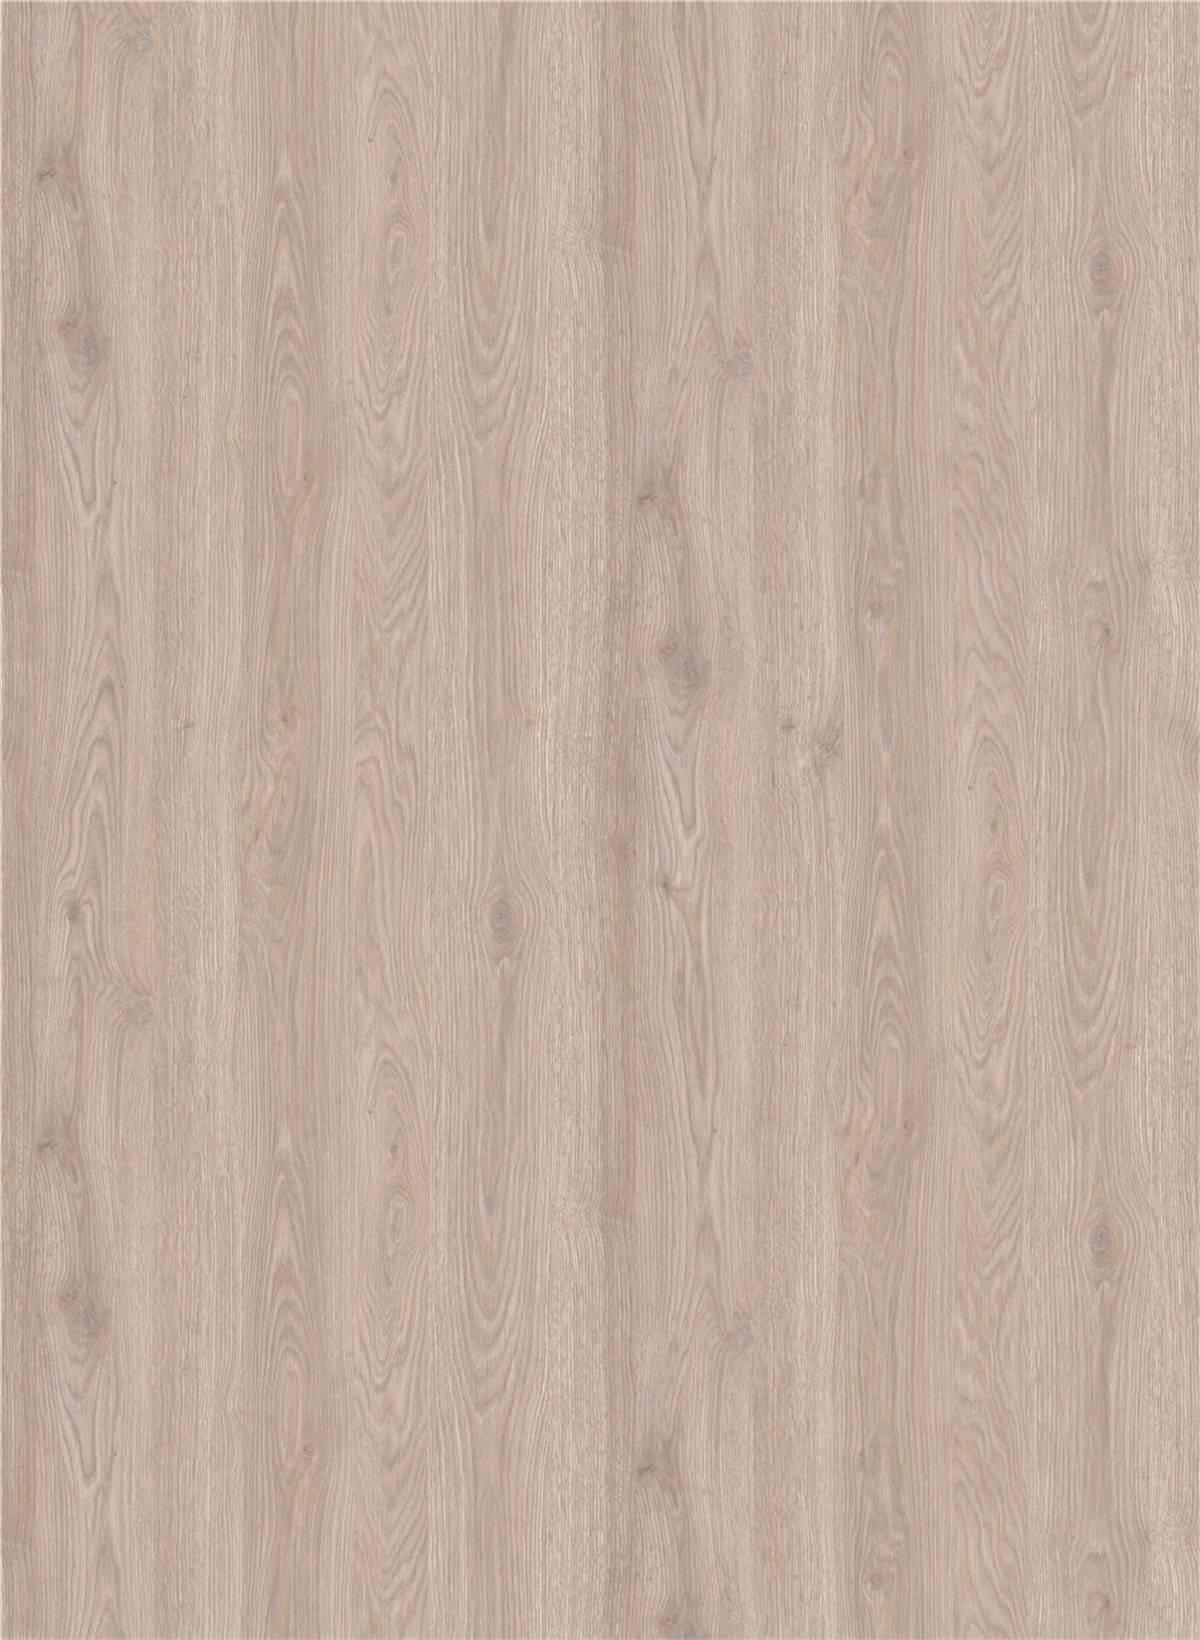 78197  idecor decor paper oak up to 7ft